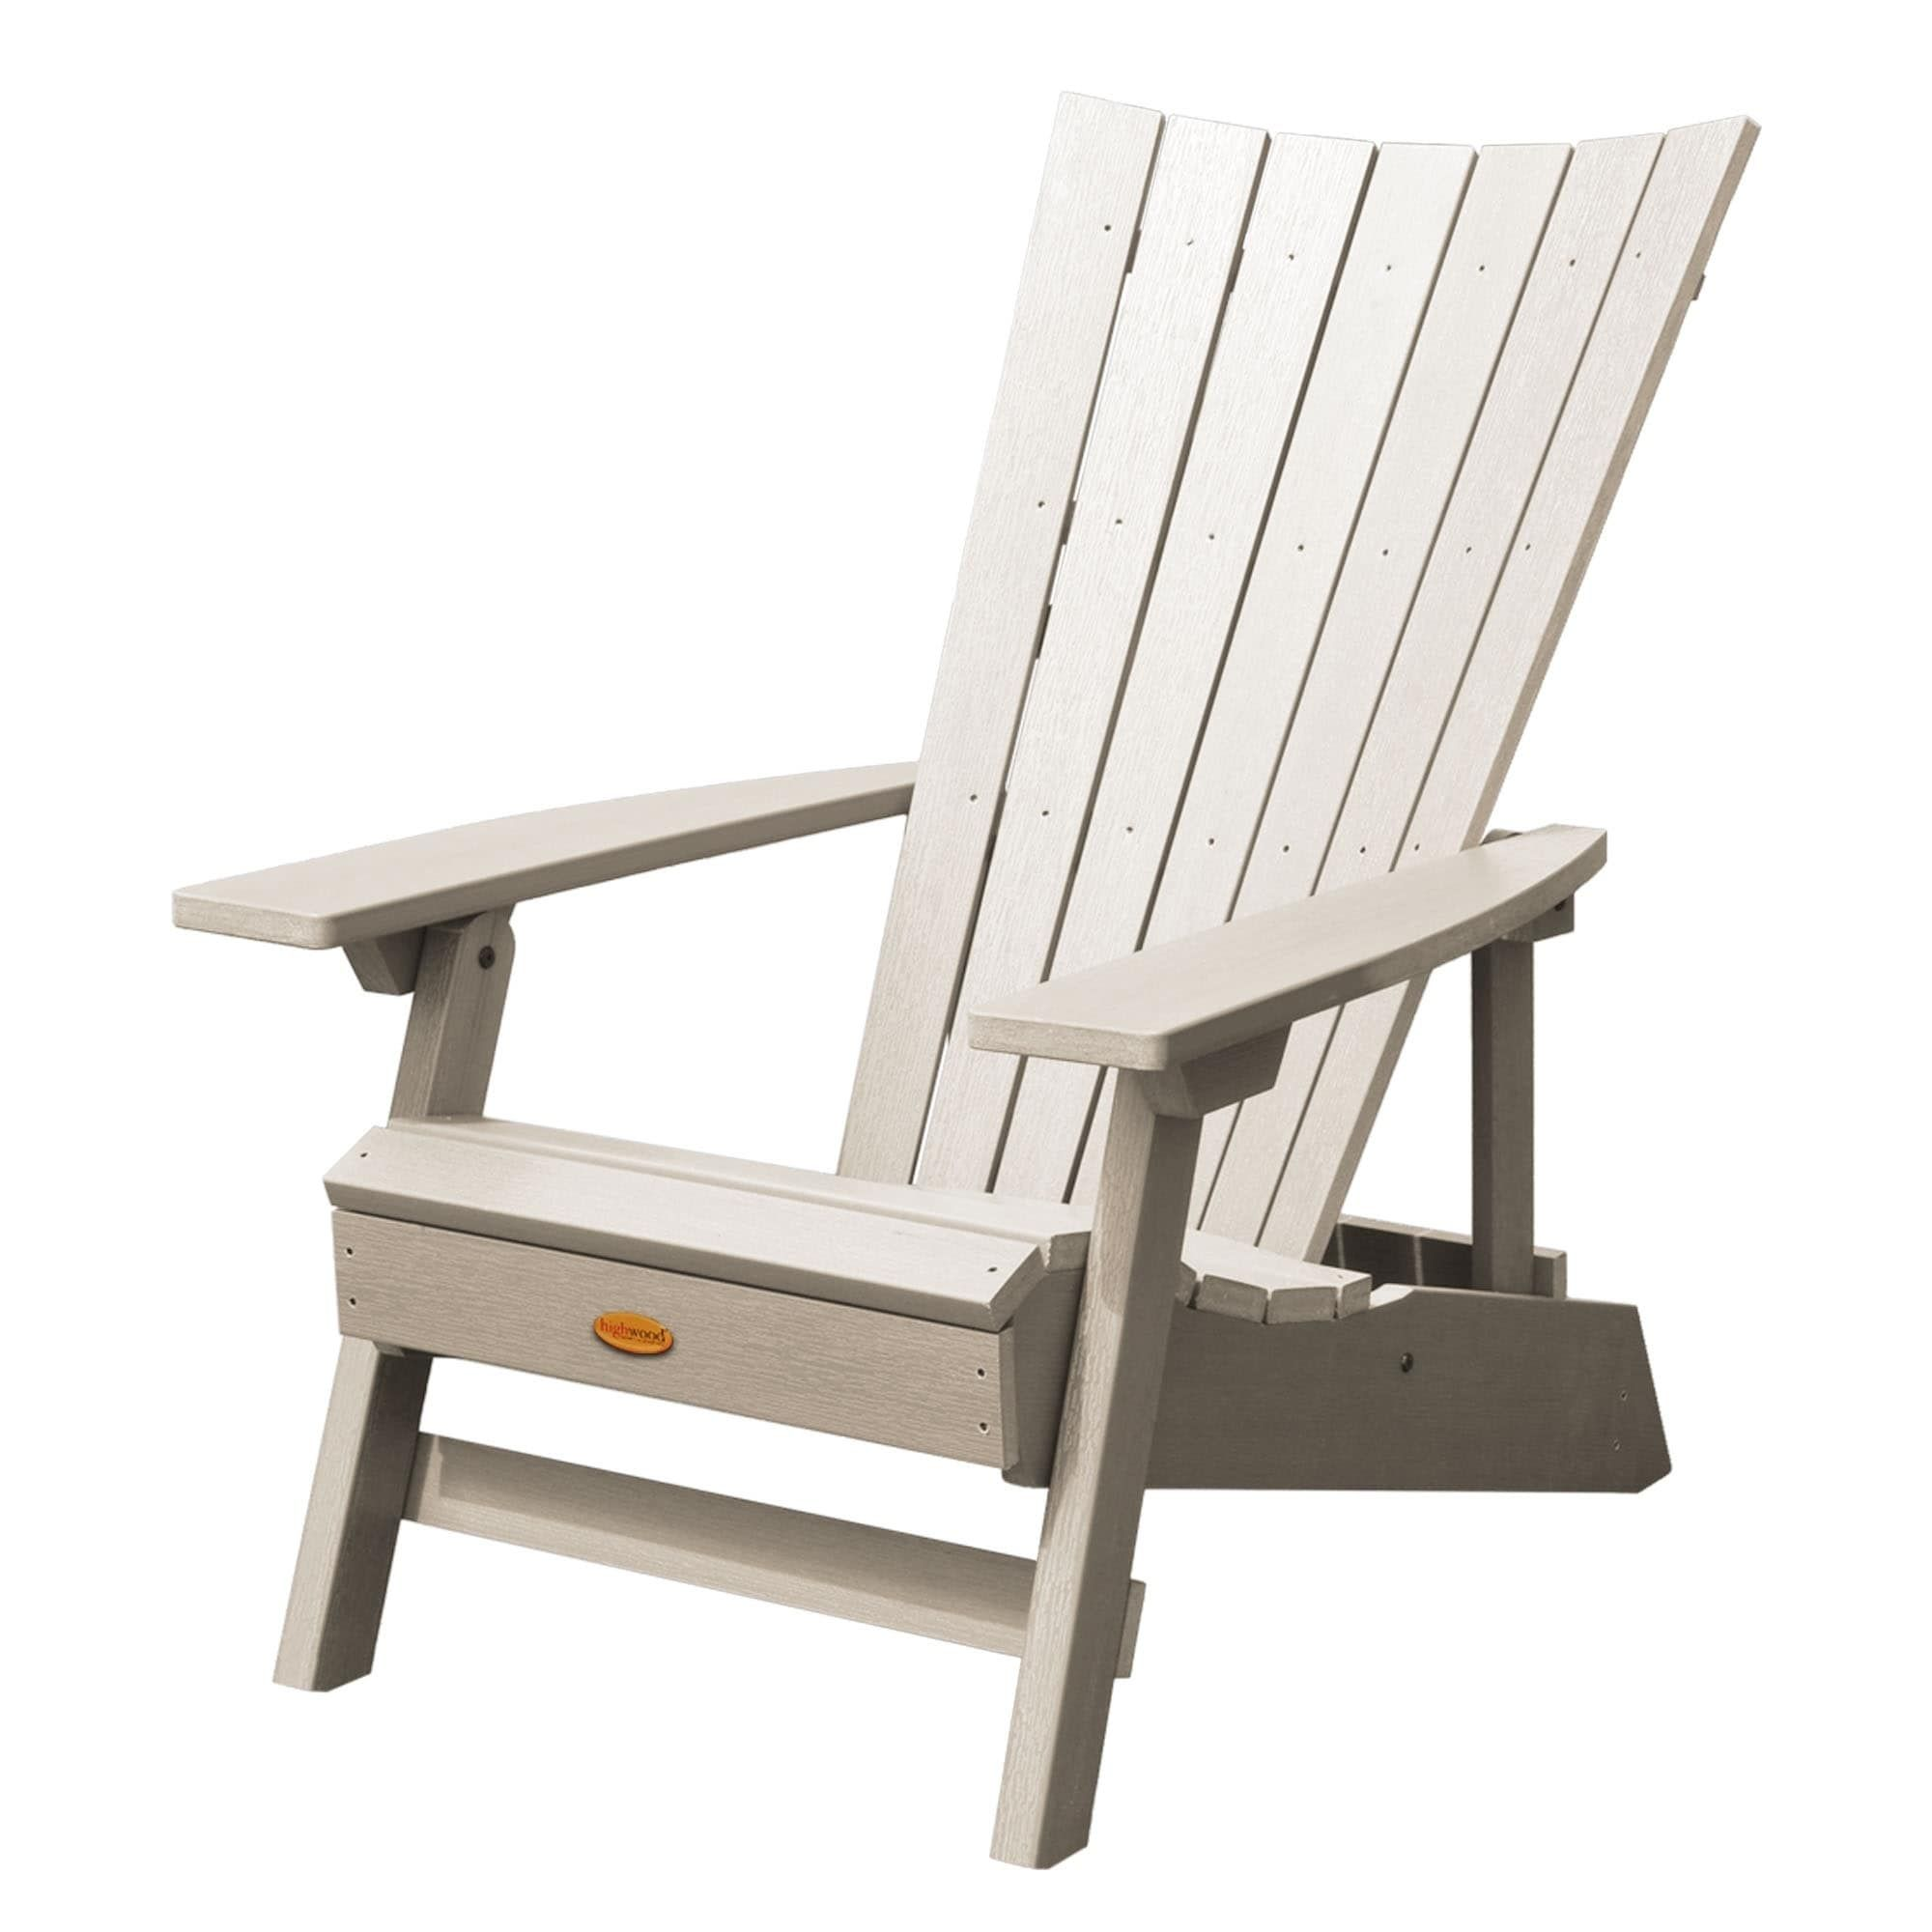 Highwood Manhattan Beach Adirondack Chair Cream Ivory Size